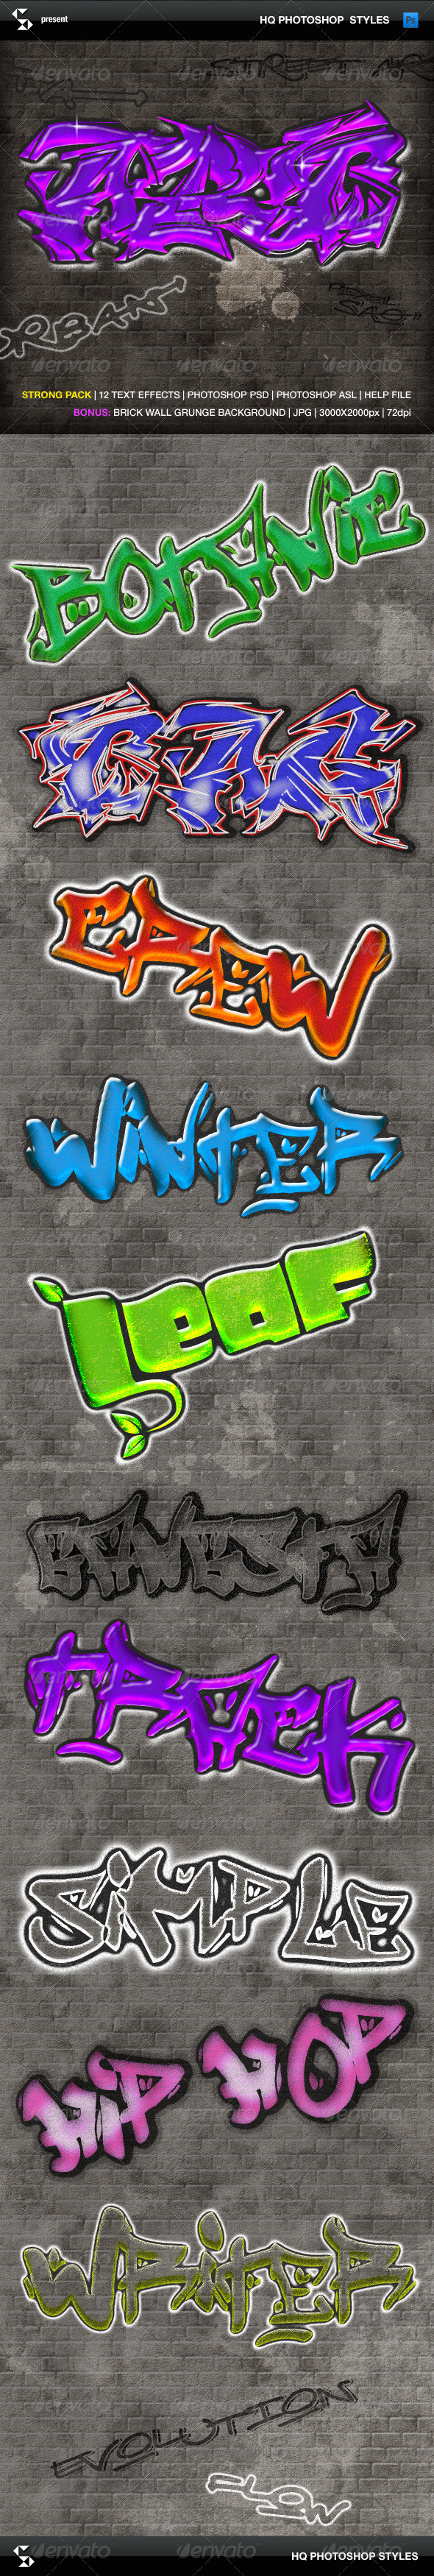 GraphicRiver Urban Graffiti Text Effects 5975406